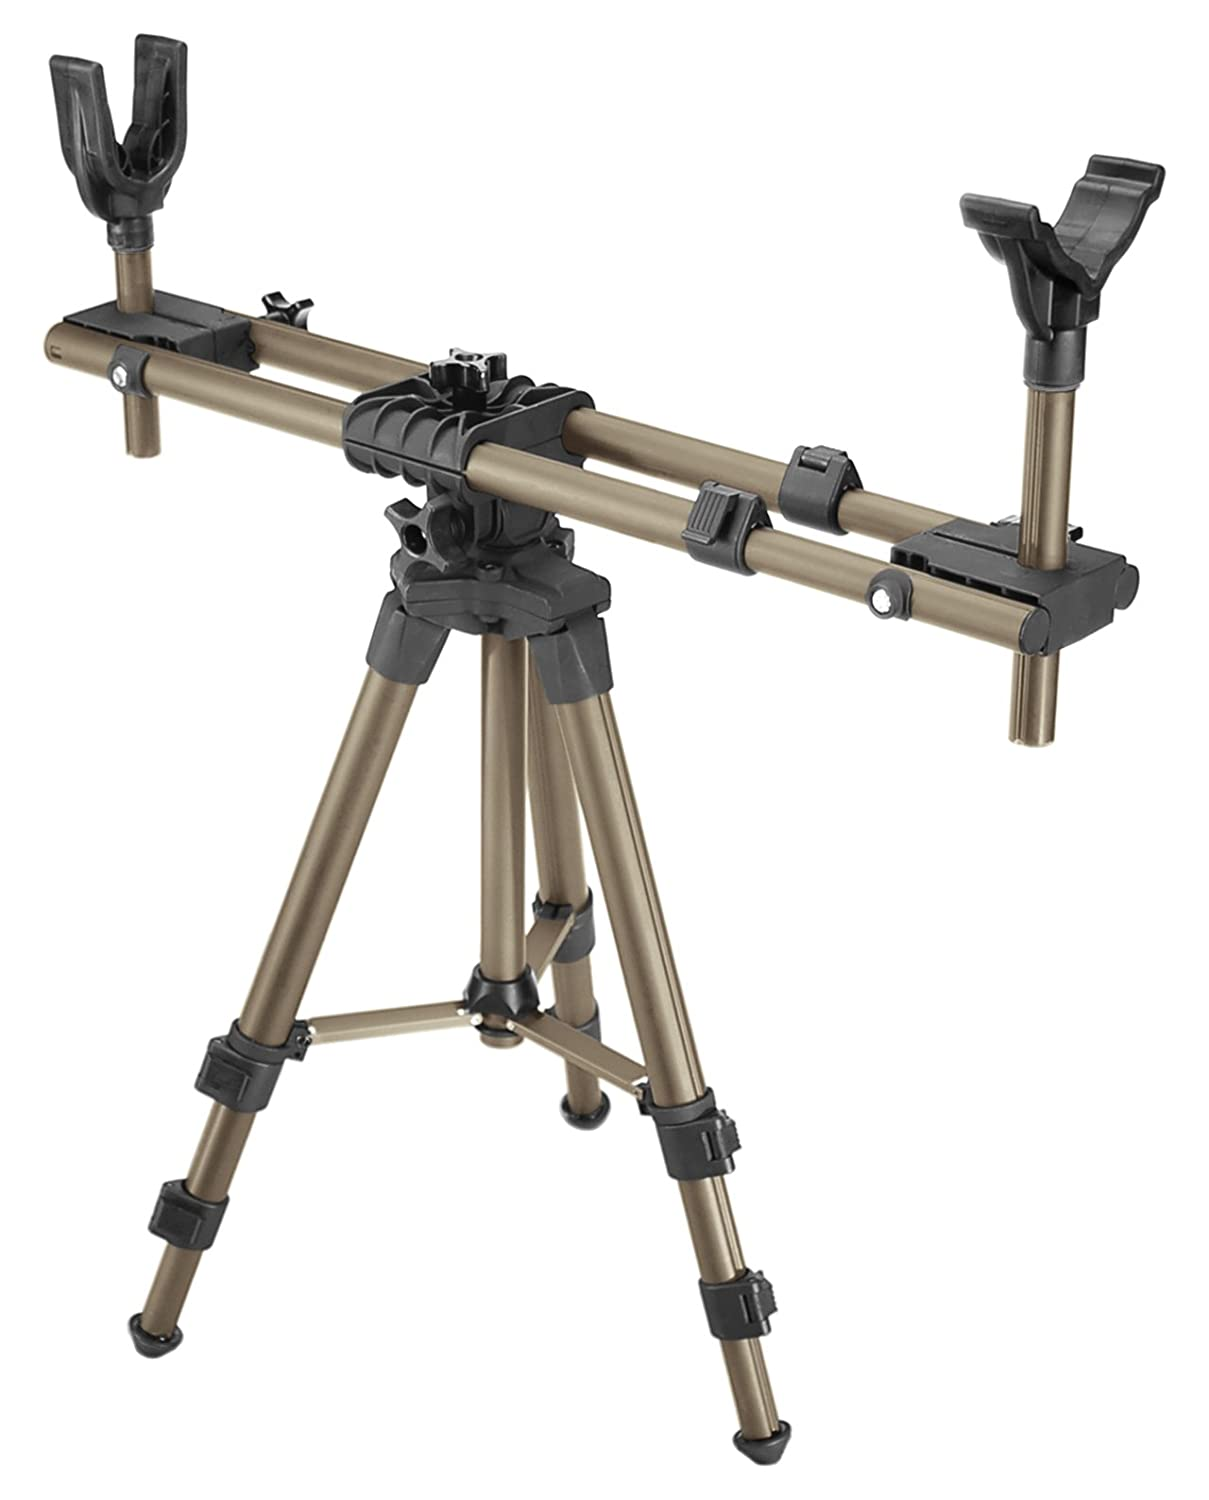 high chair deer stand used kitchen chairs caldwell deadshot fieldpod shooting tripod adjustable